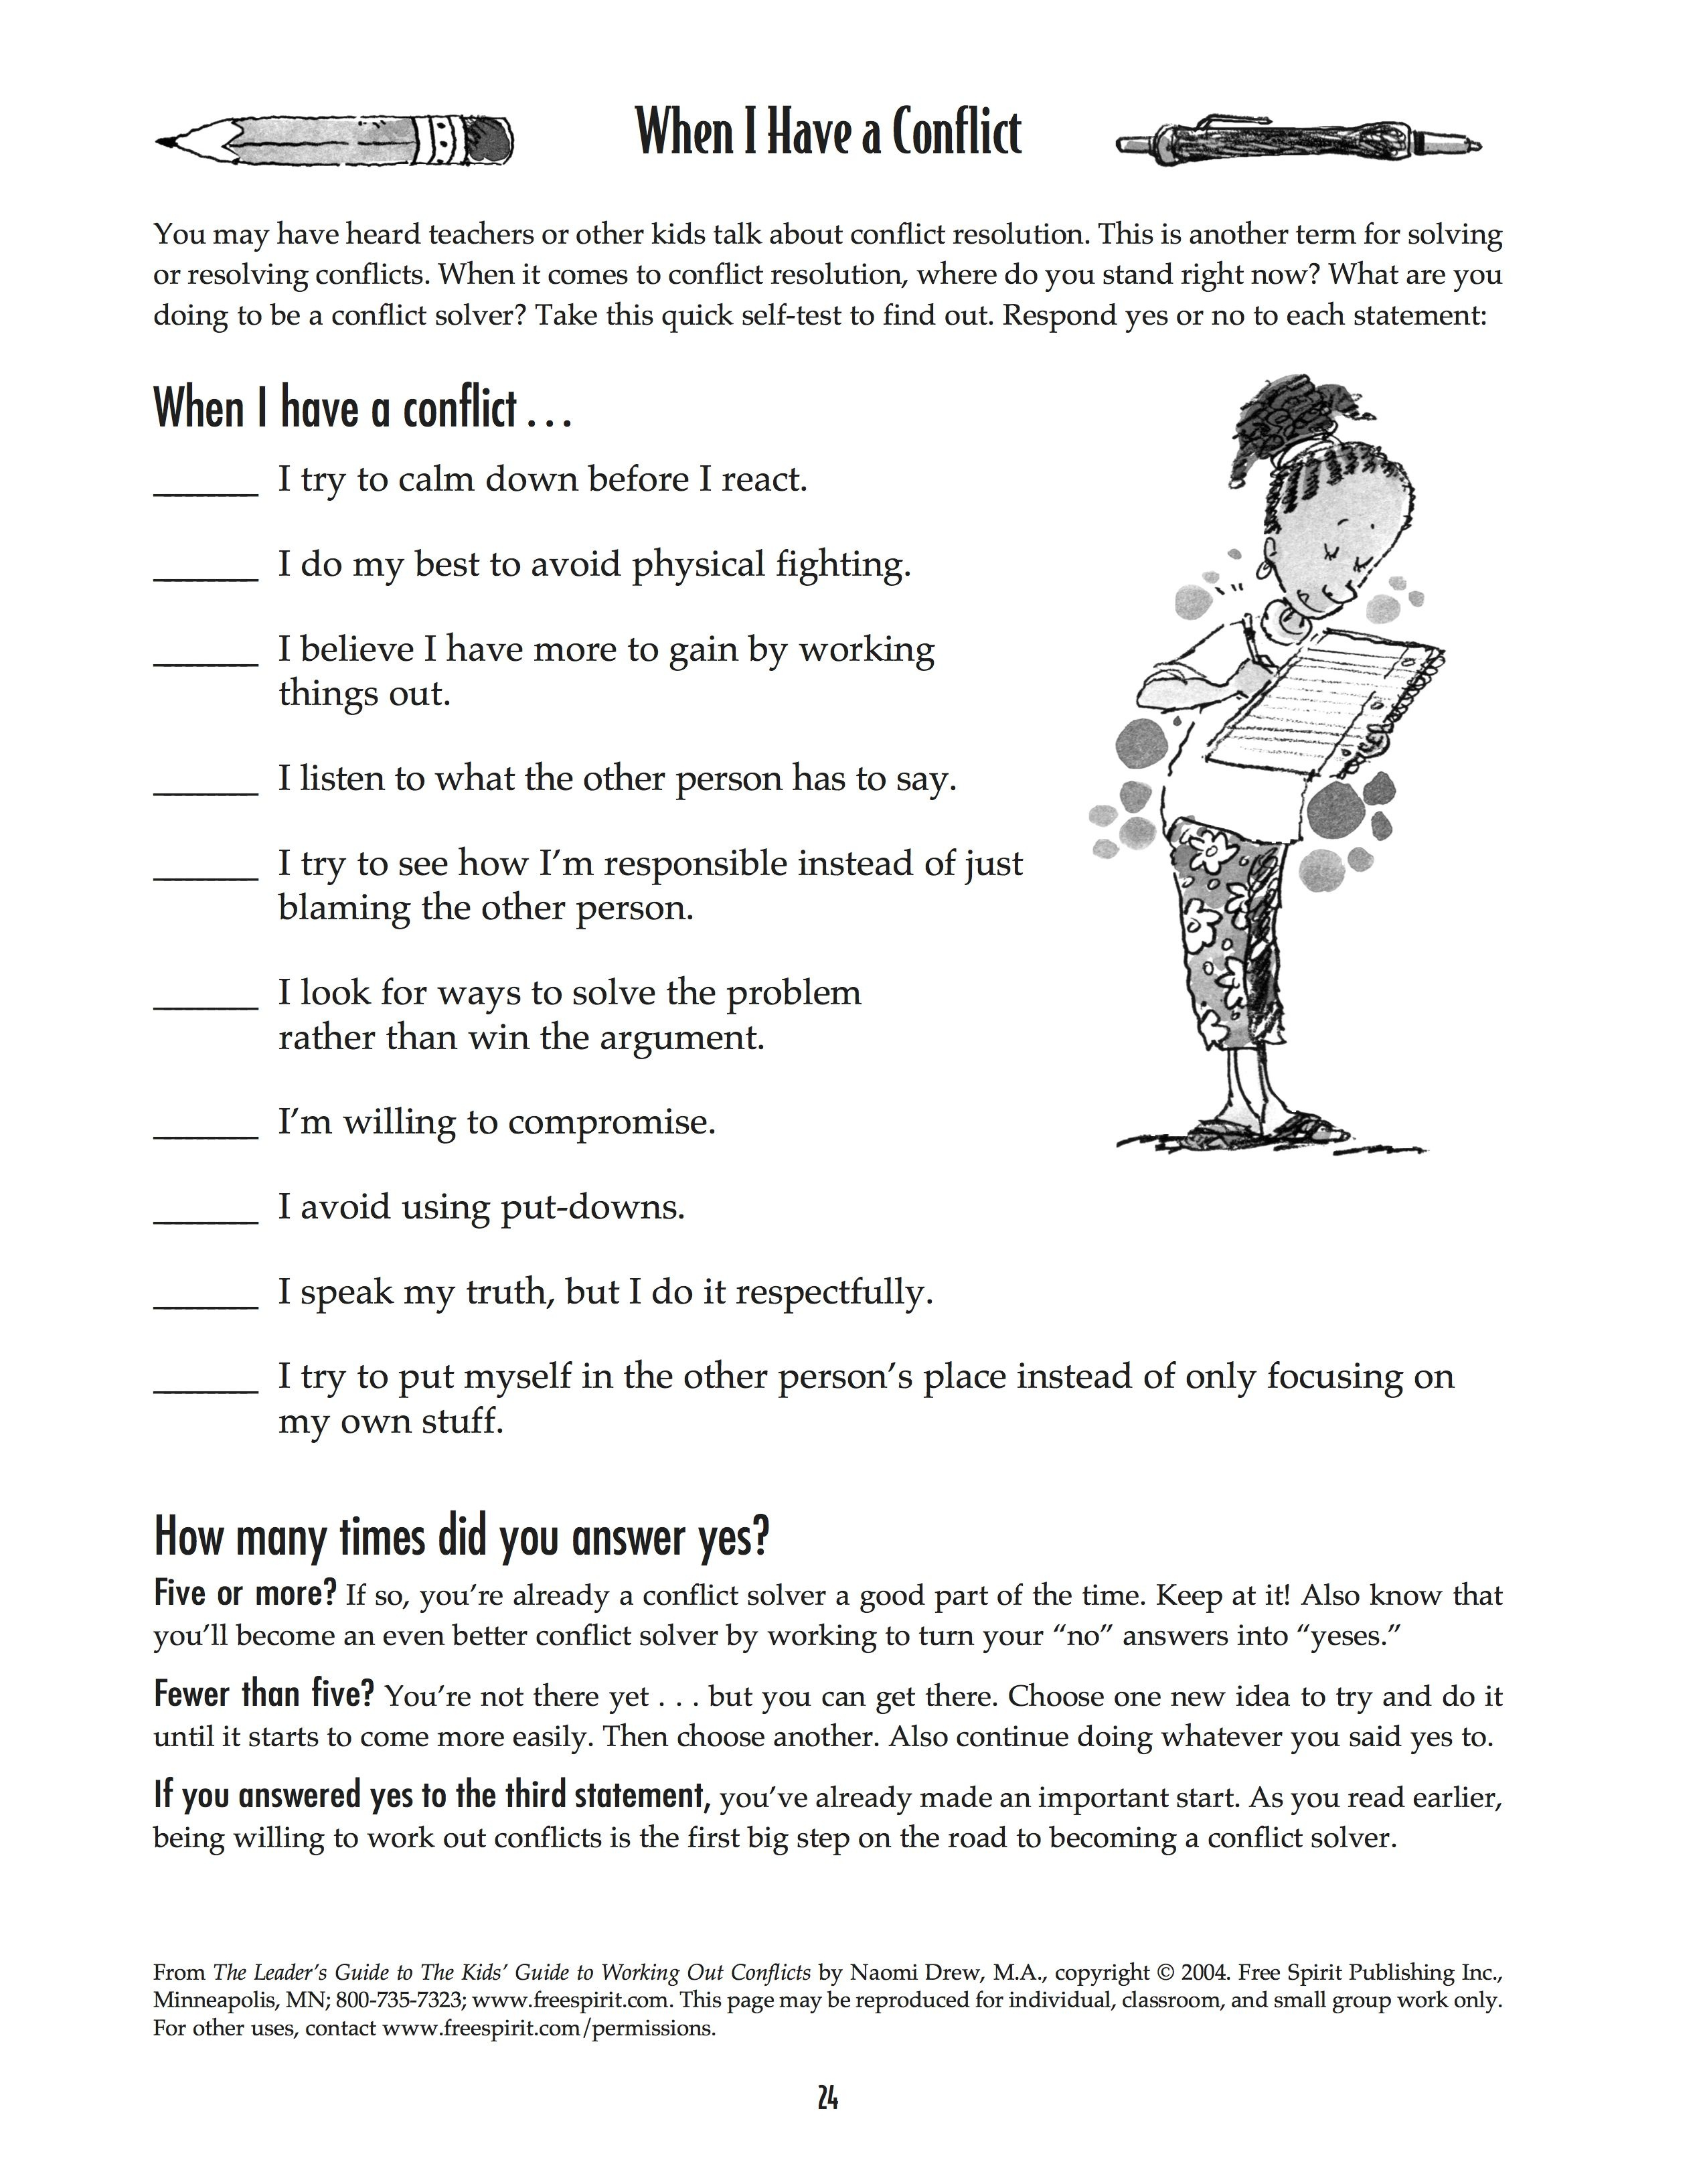 Free Printable Worksheet: When I Have A Conflict. A Quick Self-Test - Free Printable Coping Skills Worksheets